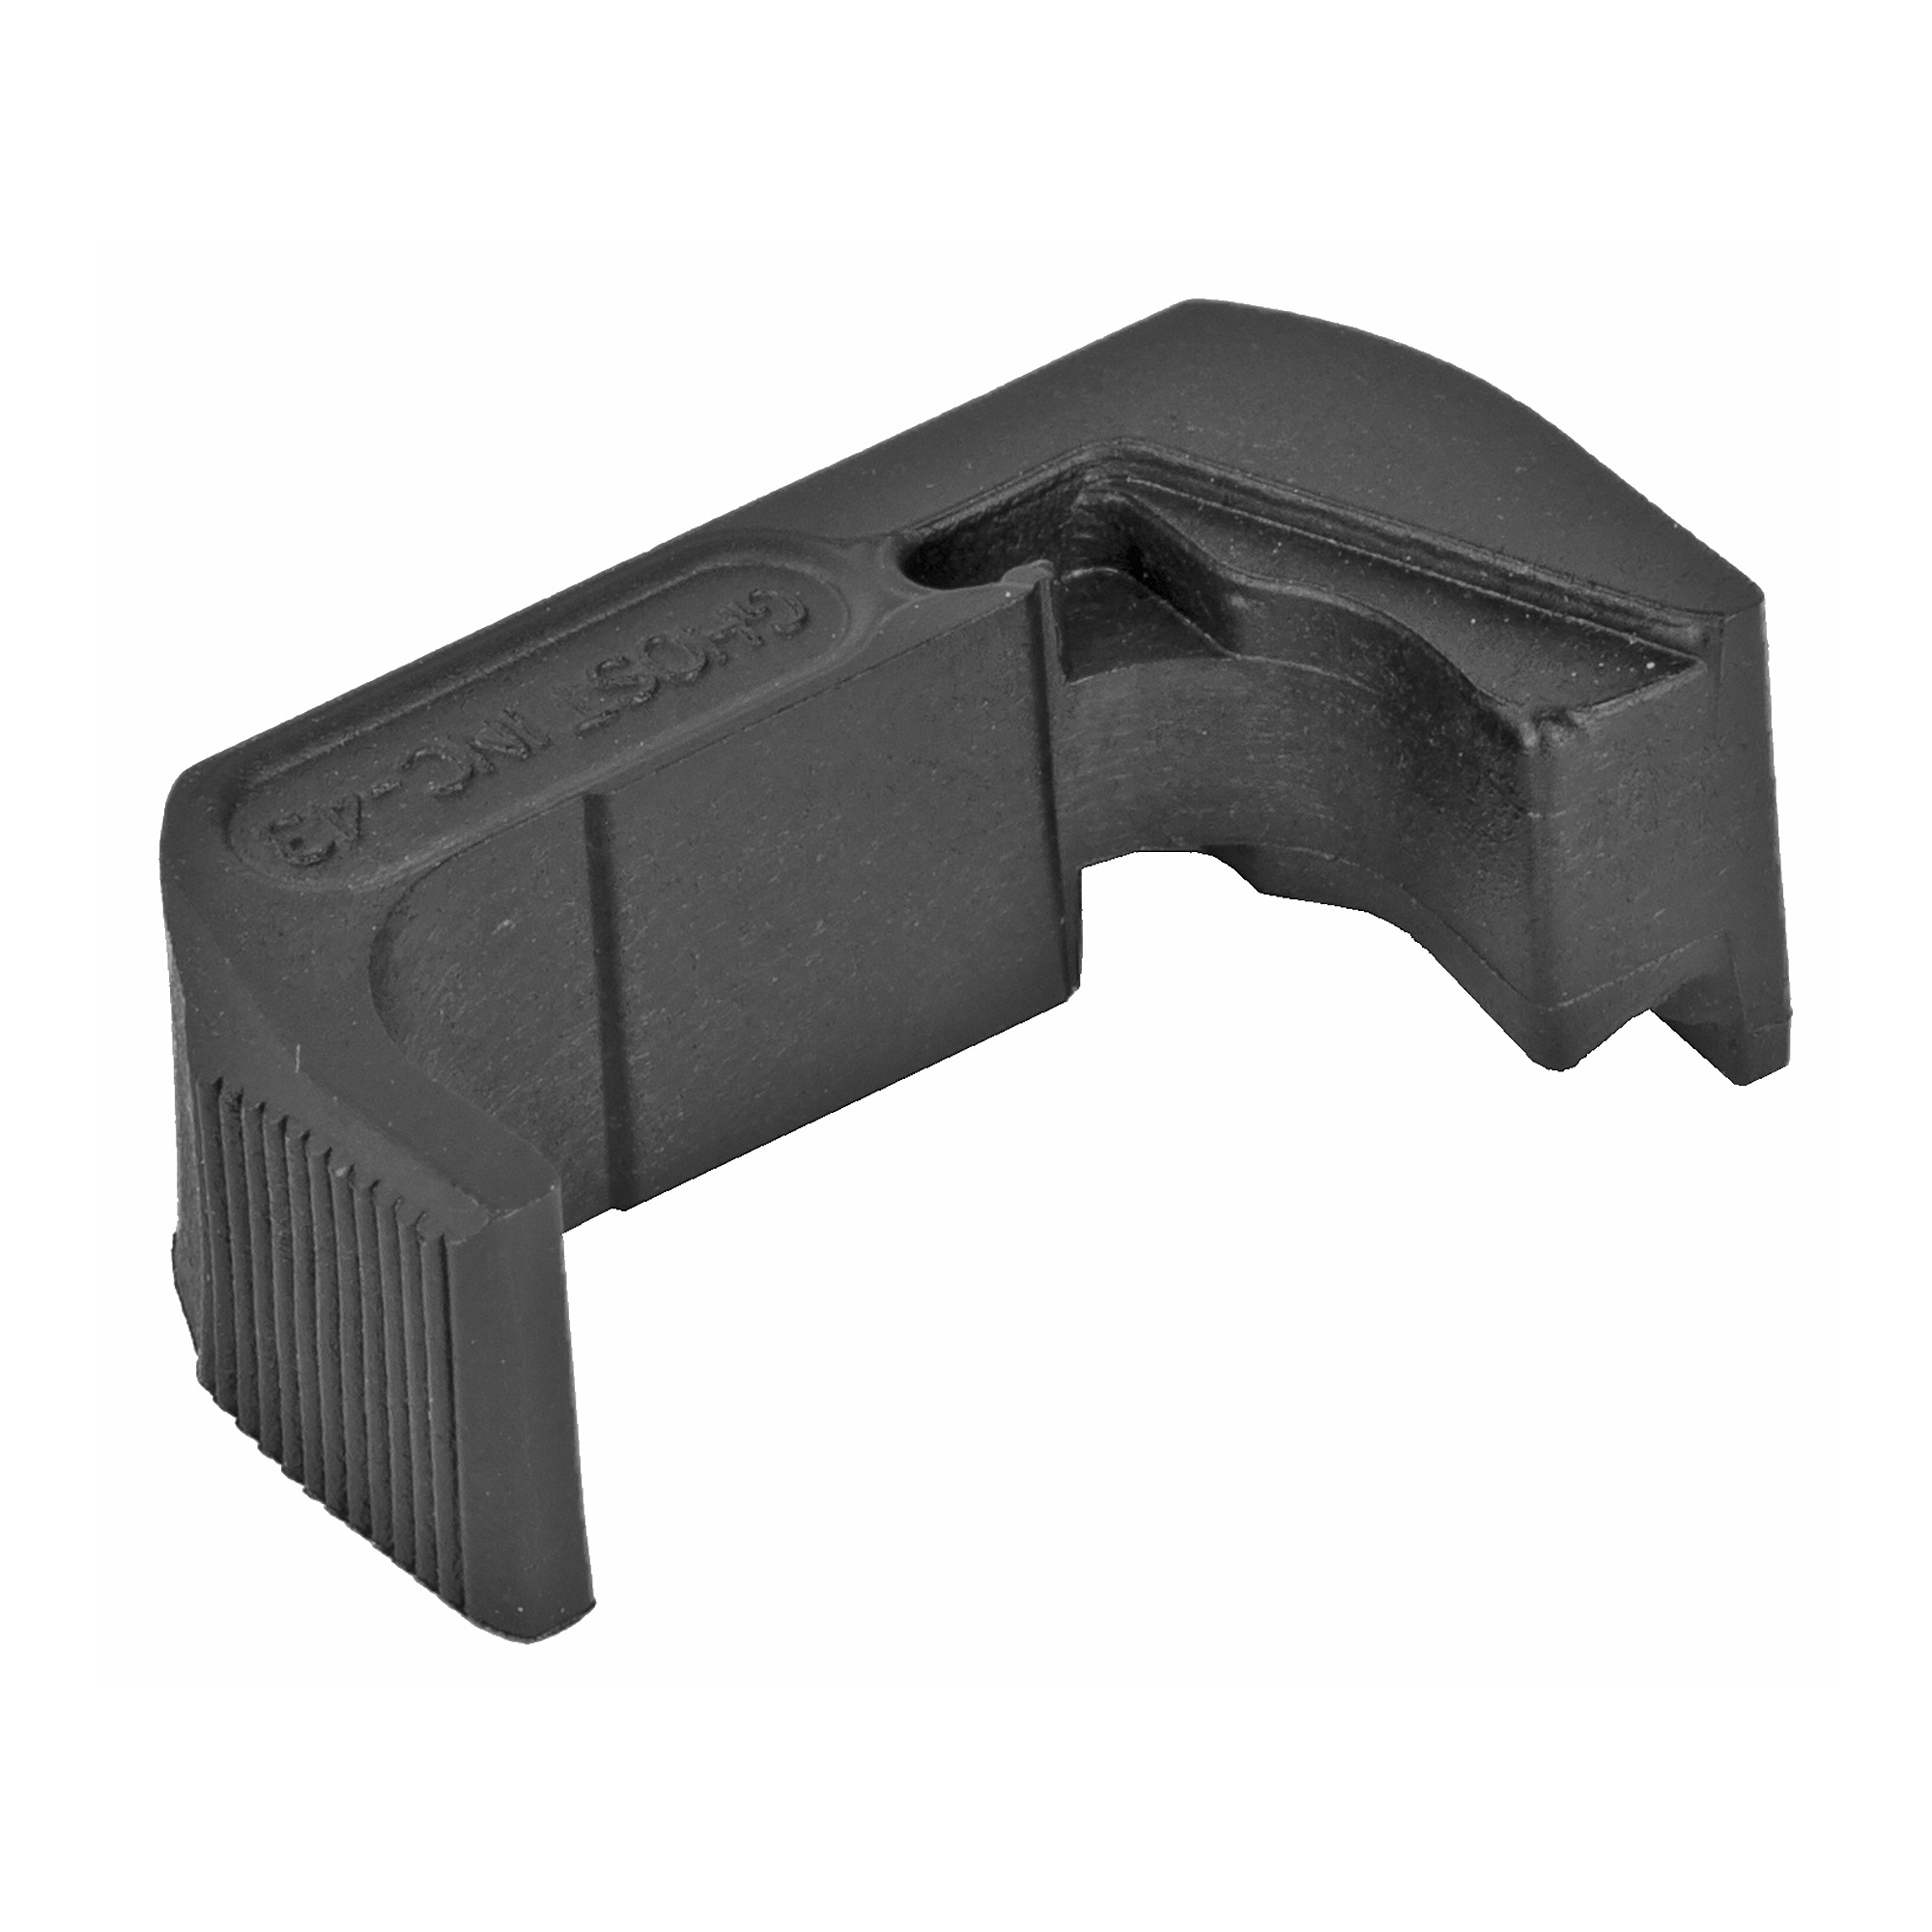 The Ghost Extended Magazine Release is designed so that you can drop a magazine without changing your firing grip and so you do not have to modify your Glock's frame. It is designed to give you the maximum surface area possible for comfort and speed of release.